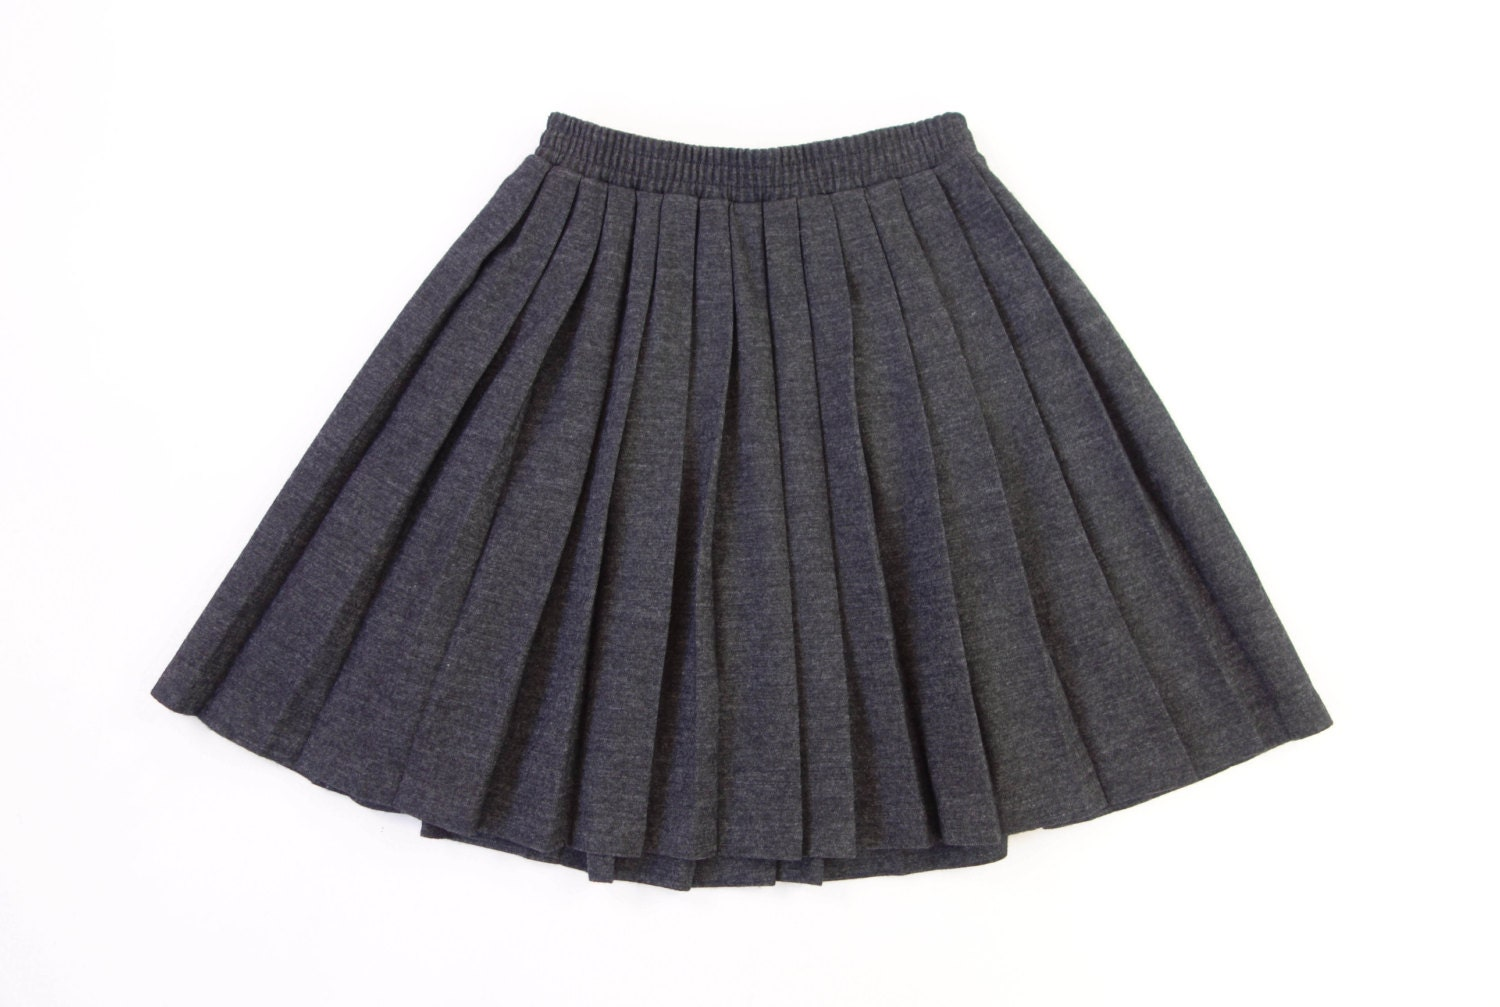 vintage 1990s grey pleated skirt wool knit by